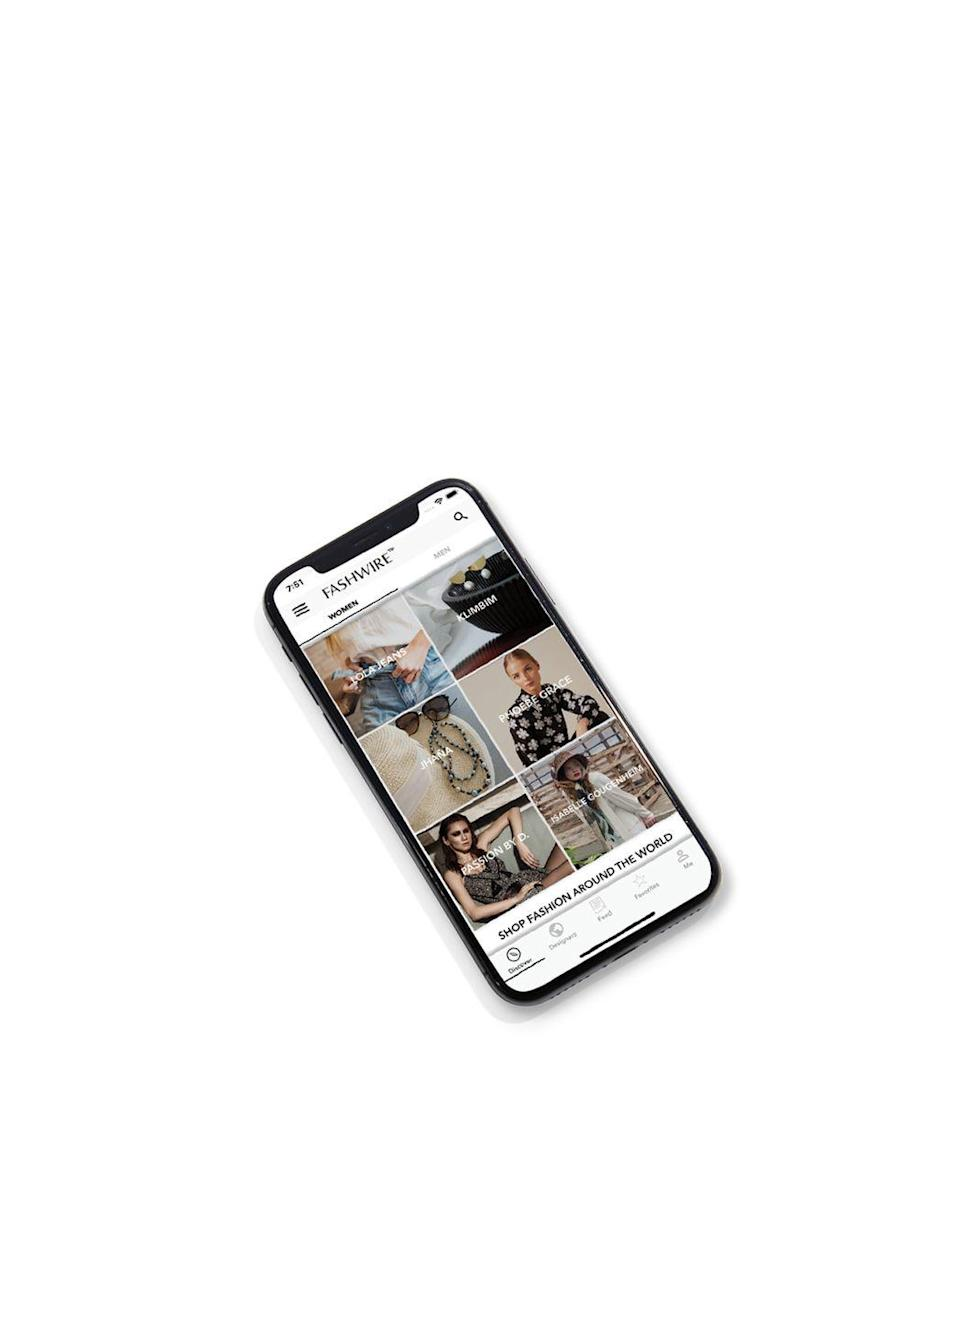 """<p>Female-founded Fashwire is a free app and digital marketplace that lets you virtually travel to more than 33 countries and shop collections curated by over 300 designers, both emerging and established. You'll find everything from amazing accessories to special separates. Plus, a percentage of every purchase goes to philanthropic organizations benefitting COVID-19 Relief.</p><p><em>Fashwire</em>, App Store and Google Play, $1.99</p><p><a class=""""link rapid-noclick-resp"""" href=""""https://www.fashwire.com/"""" rel=""""nofollow noopener"""" target=""""_blank"""" data-ylk=""""slk:DOWNLOAD NOW"""">DOWNLOAD NOW</a></p>"""